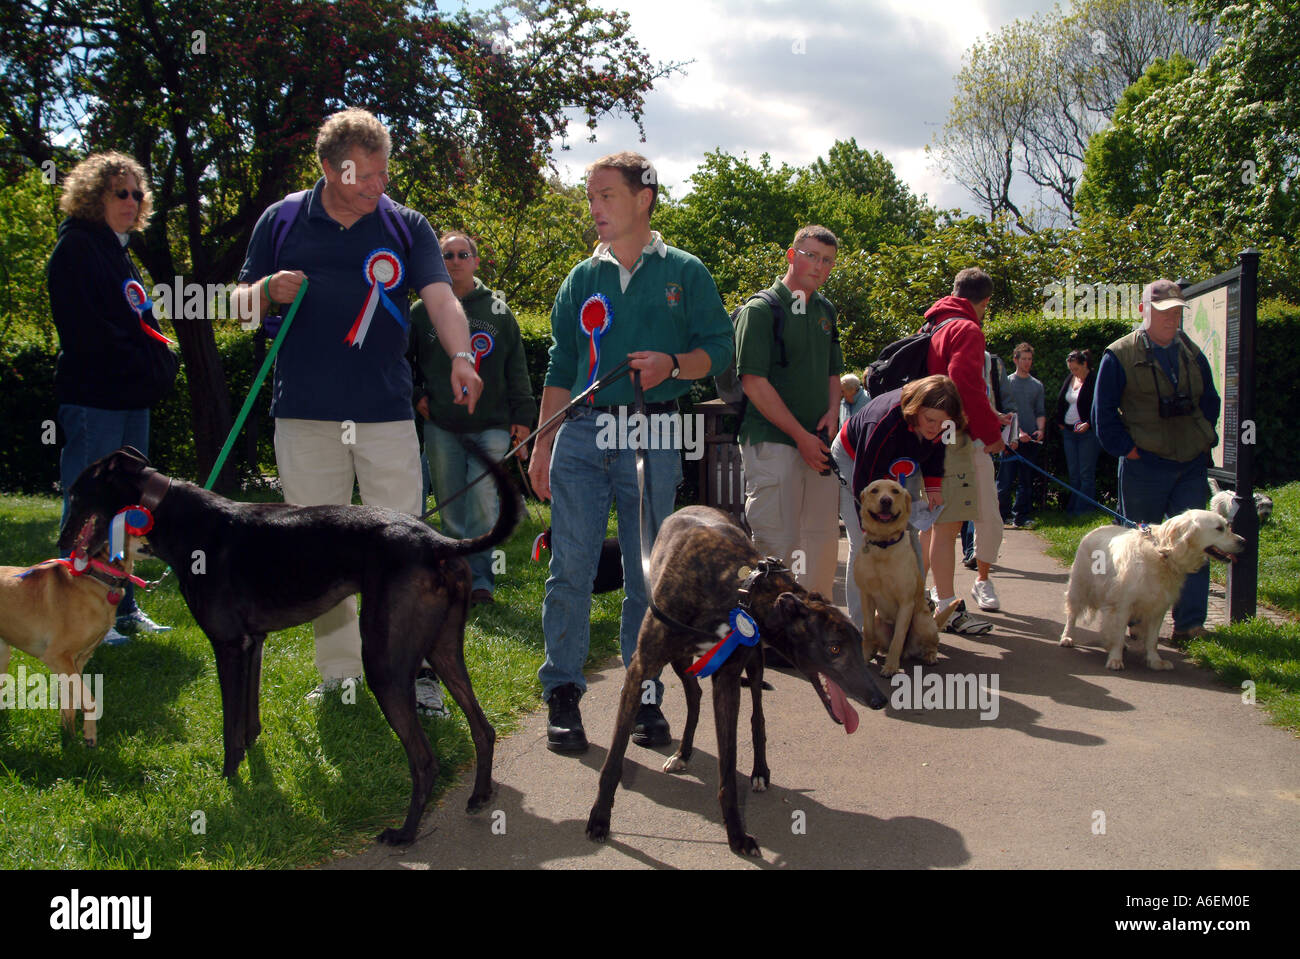 GROUP OF DOG OWNERS IN CHARITY ORGANIZED WALK IN THE PARK - Stock Image